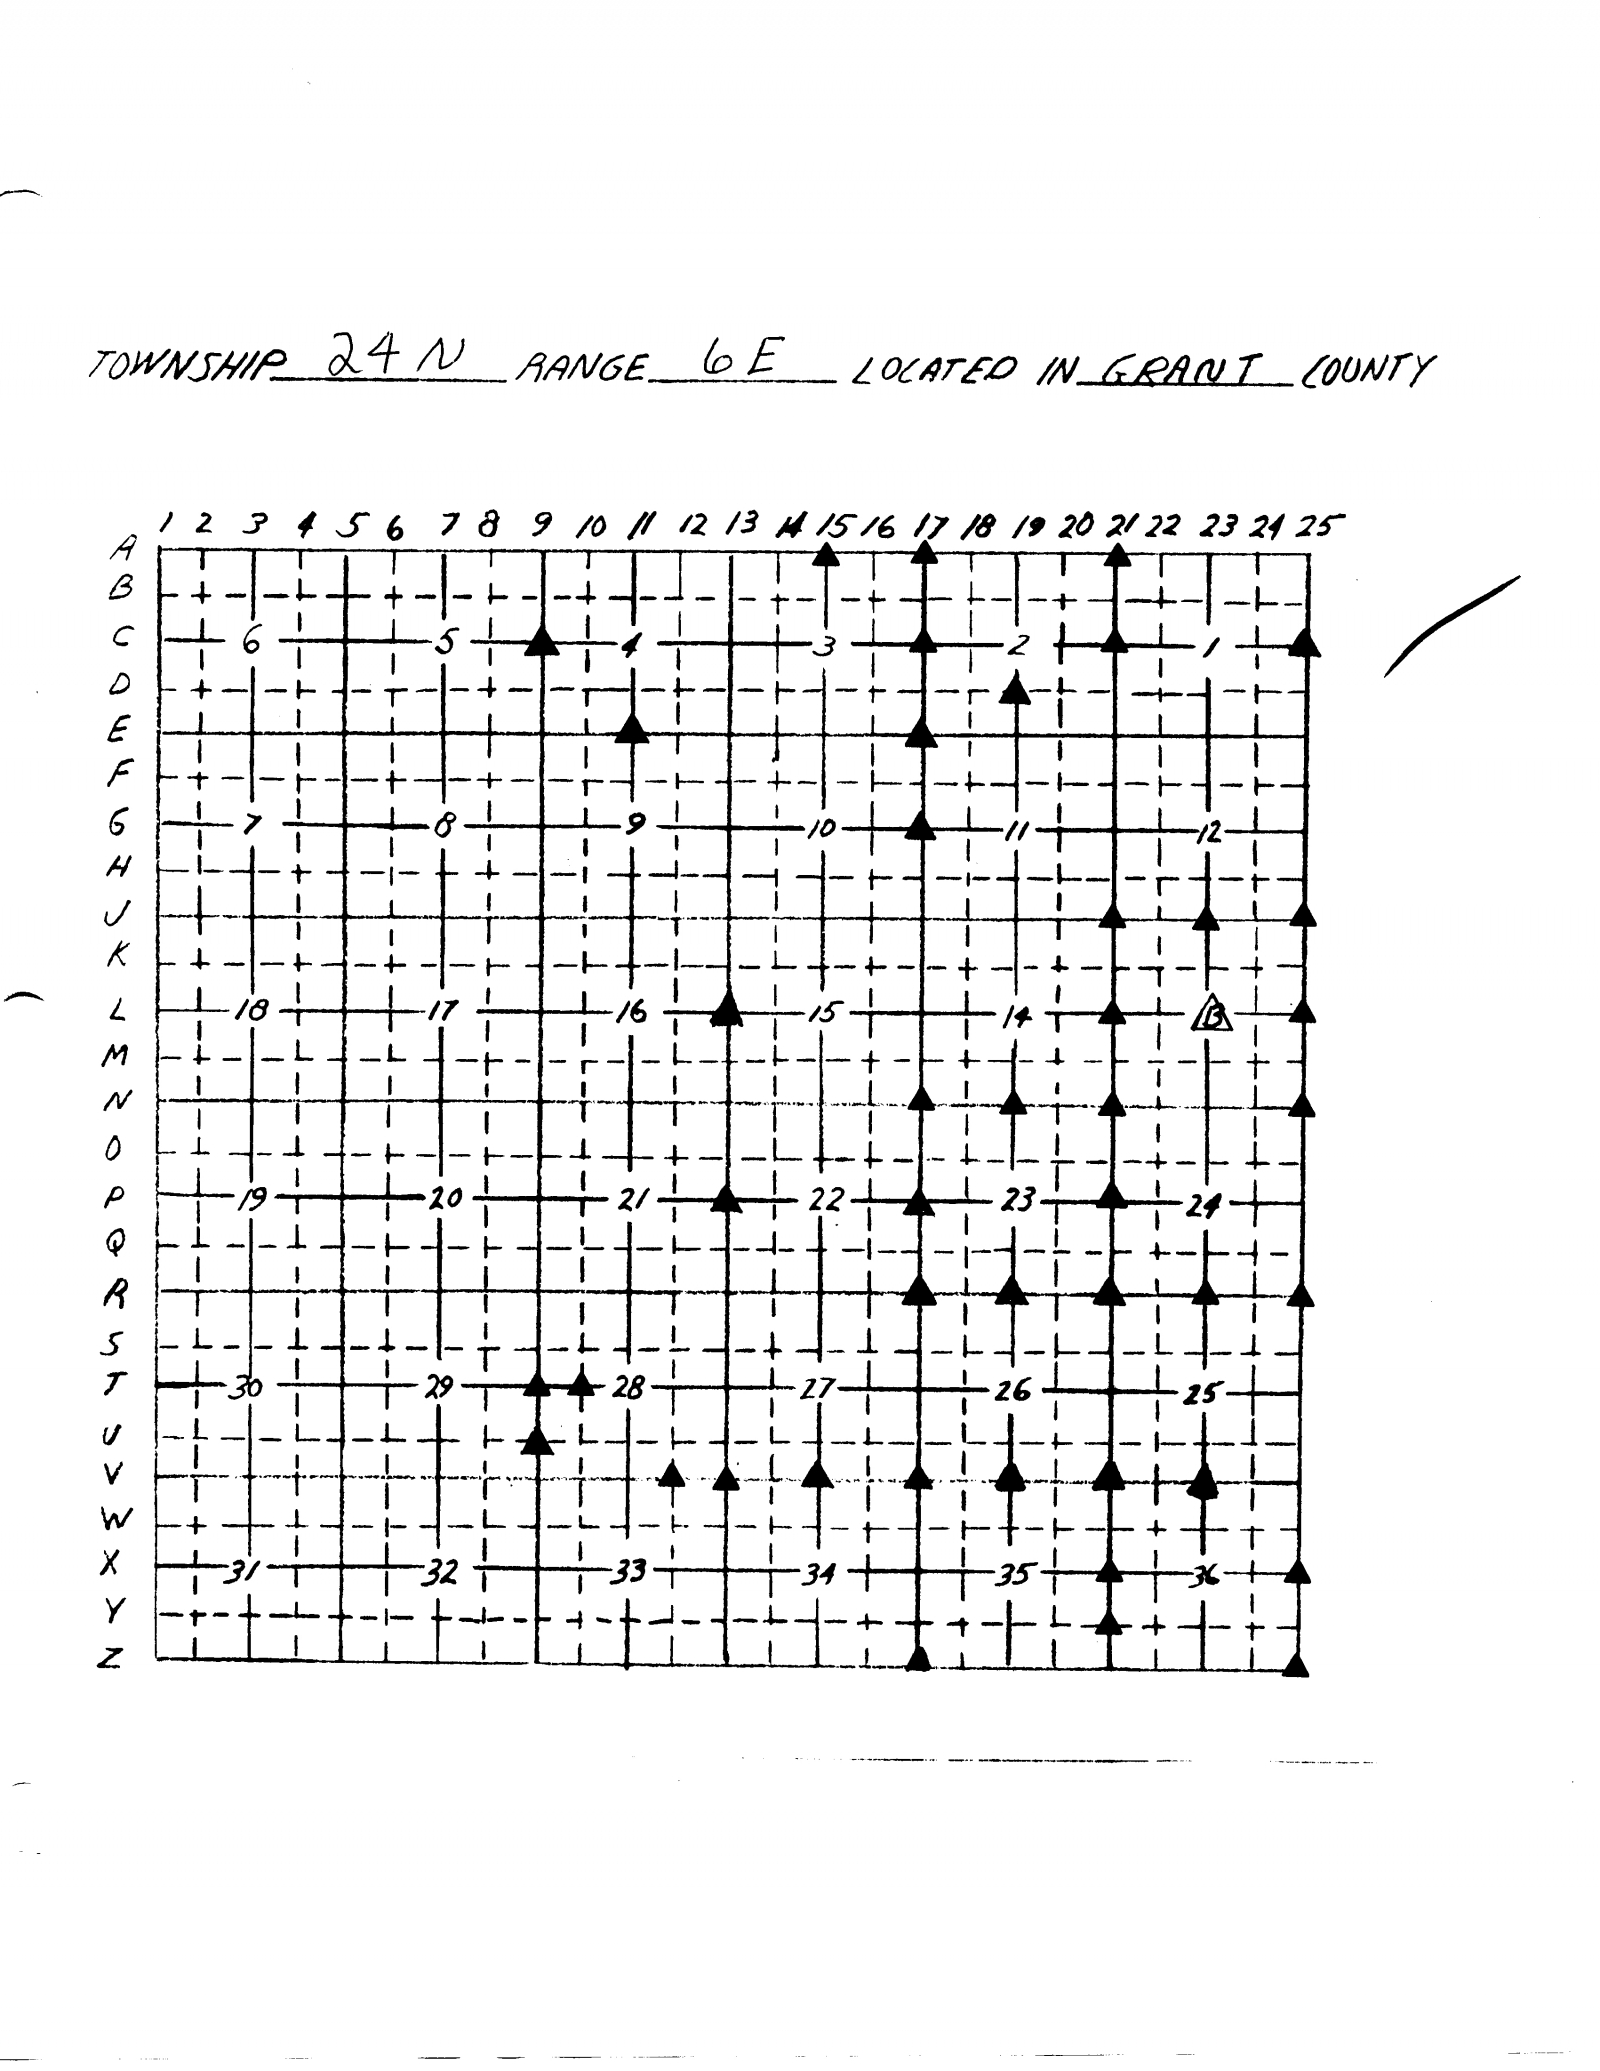 grid for cornerstone markers t24n